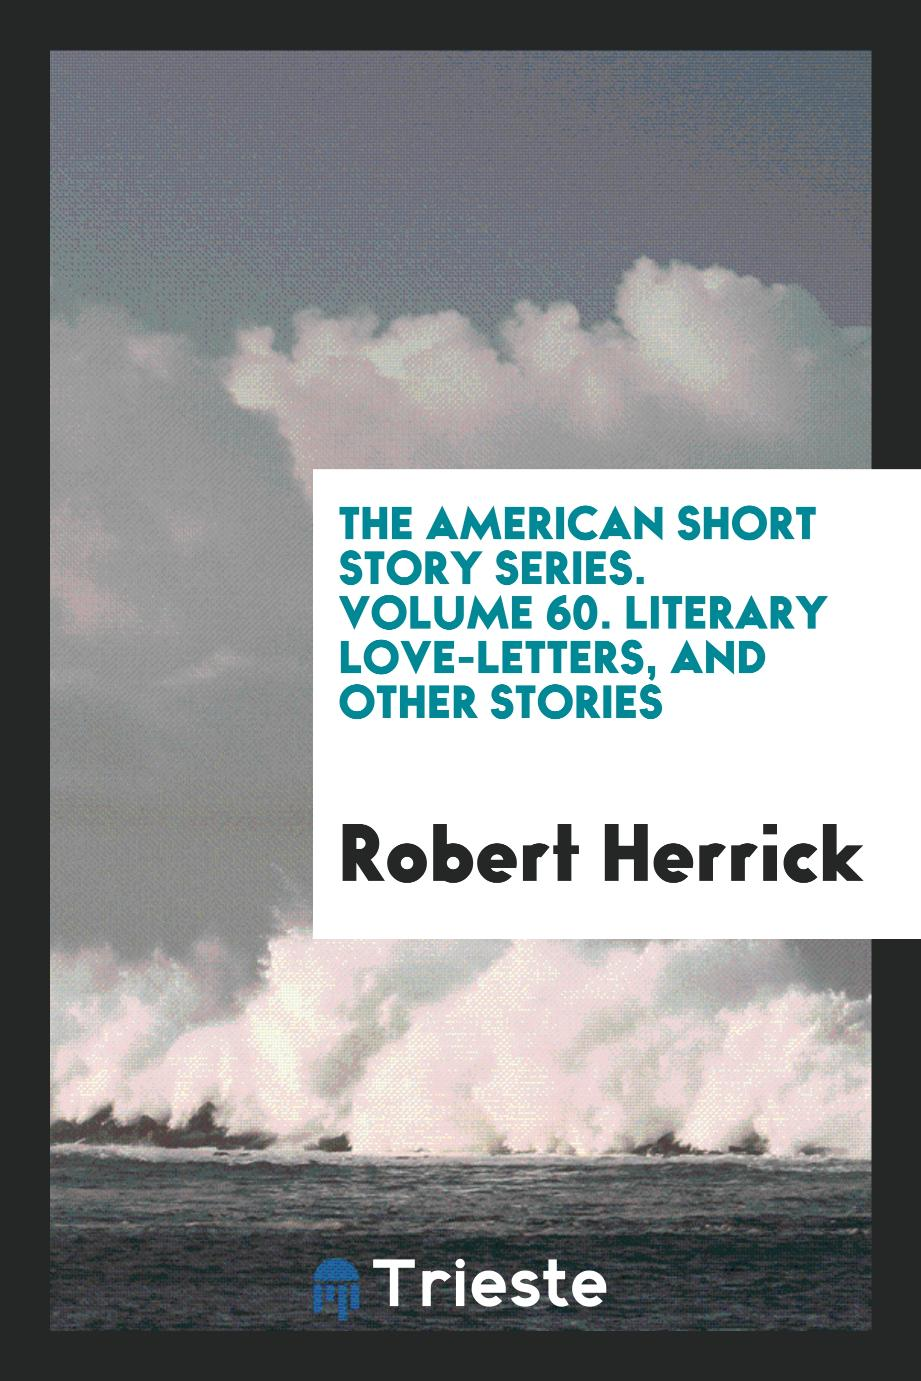 The American Short Story Series. Volume 60. Literary Love-letters, and Other Stories